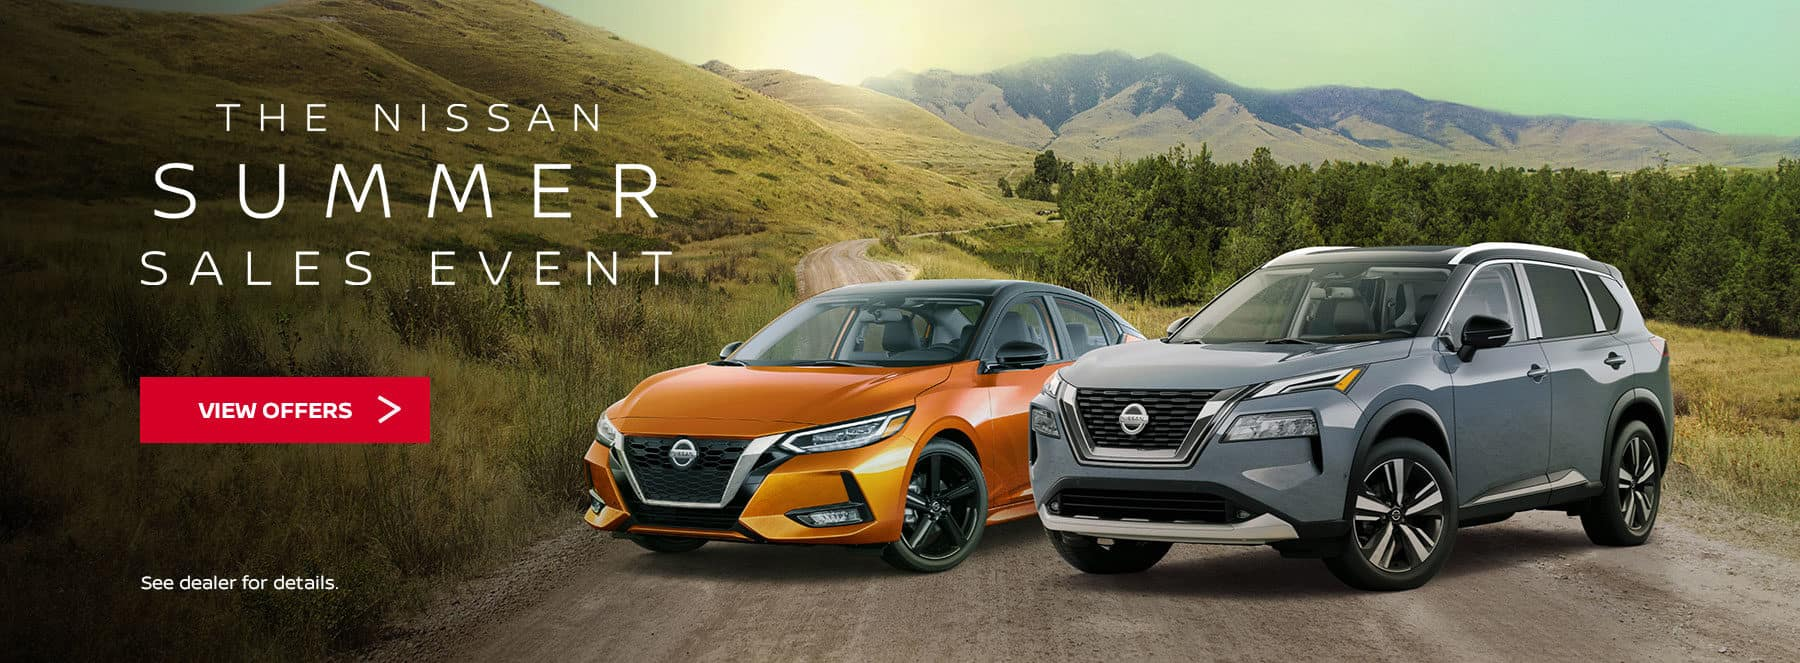 The Nissan Summer Sales Event